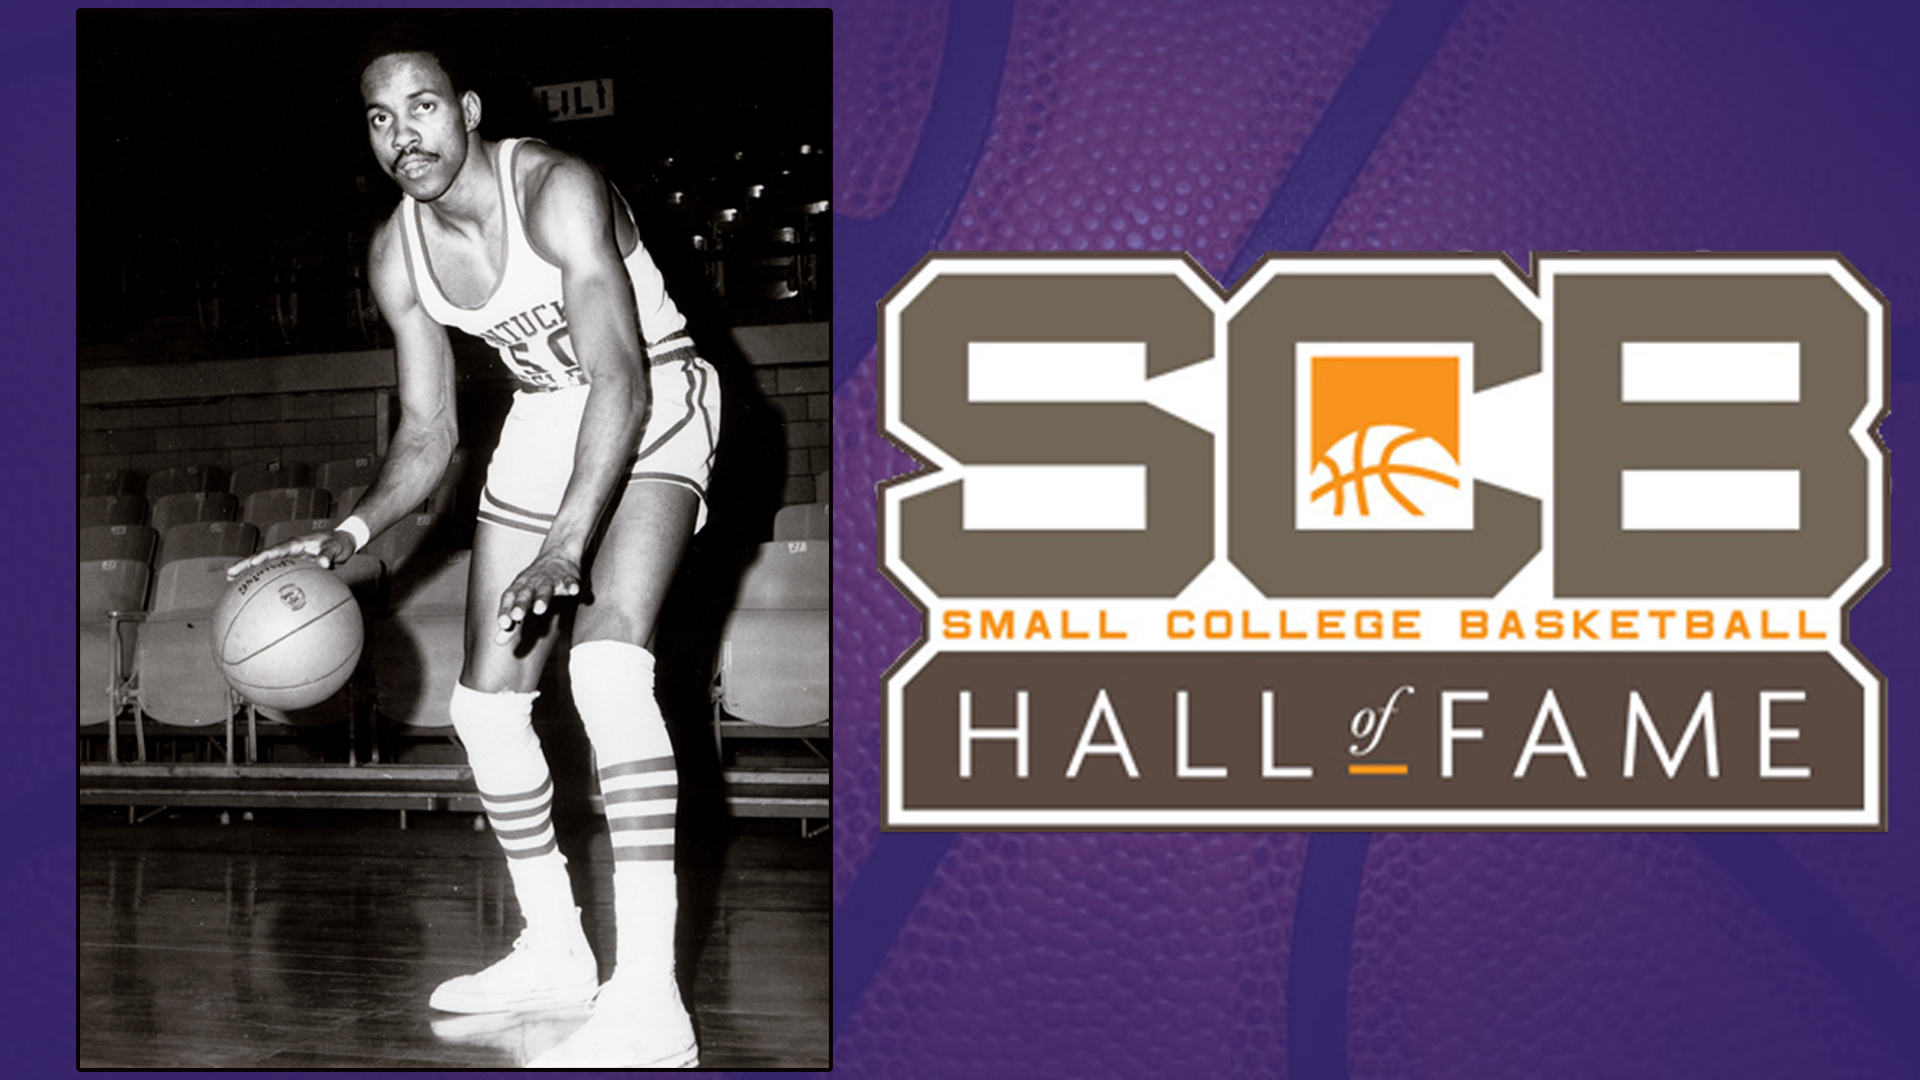 George Tinsley to be Inducted Into Small College Basketball Hall